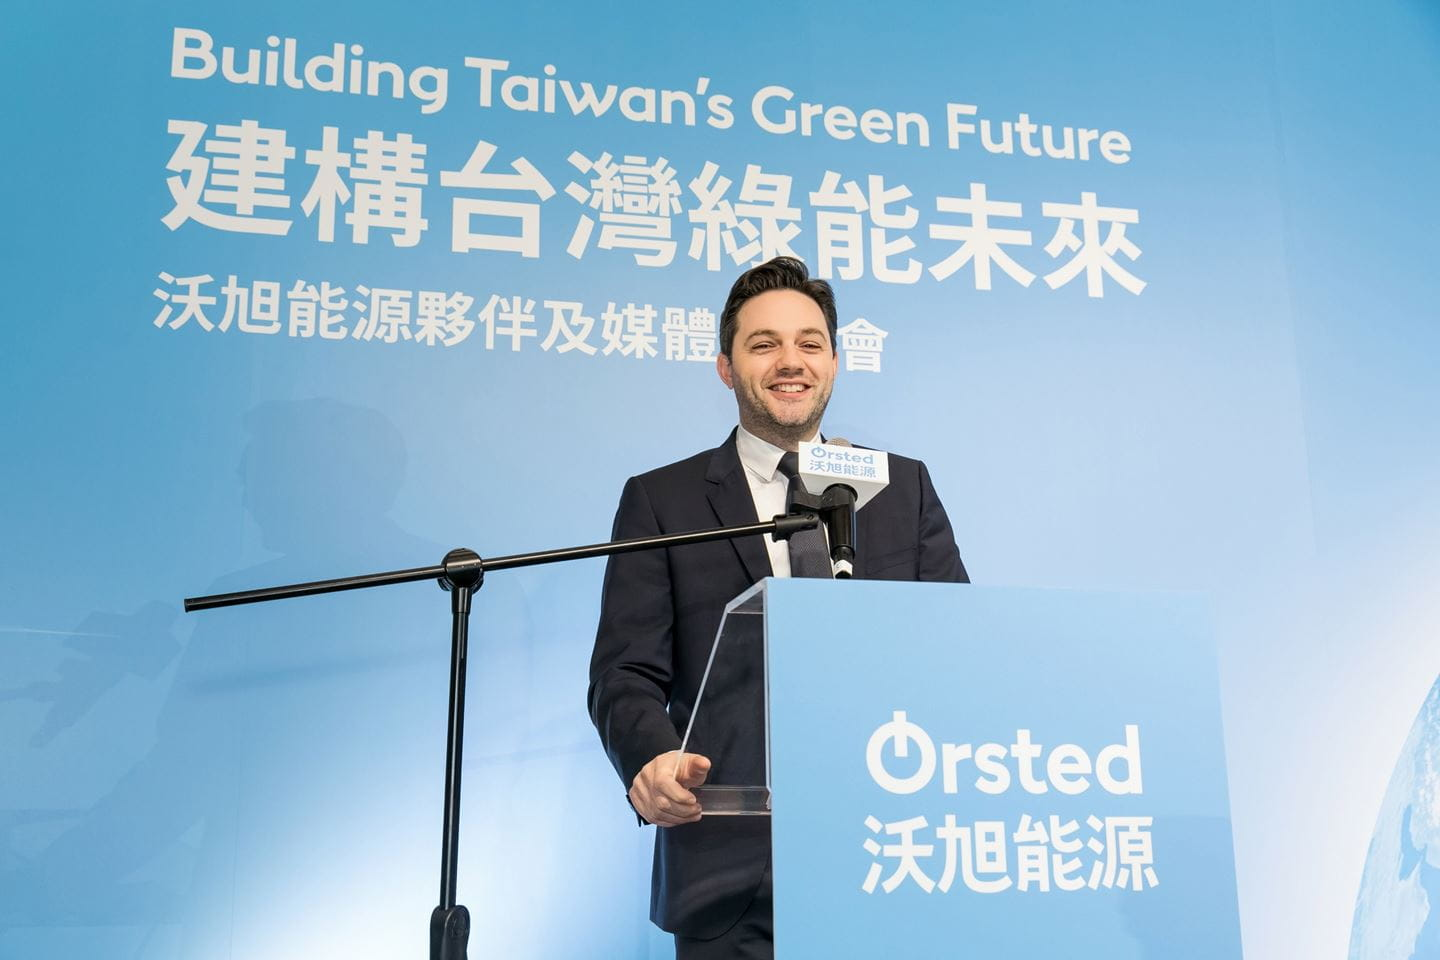 Ørsted is the first offshore wind developer signed a MoU with Changhua County.